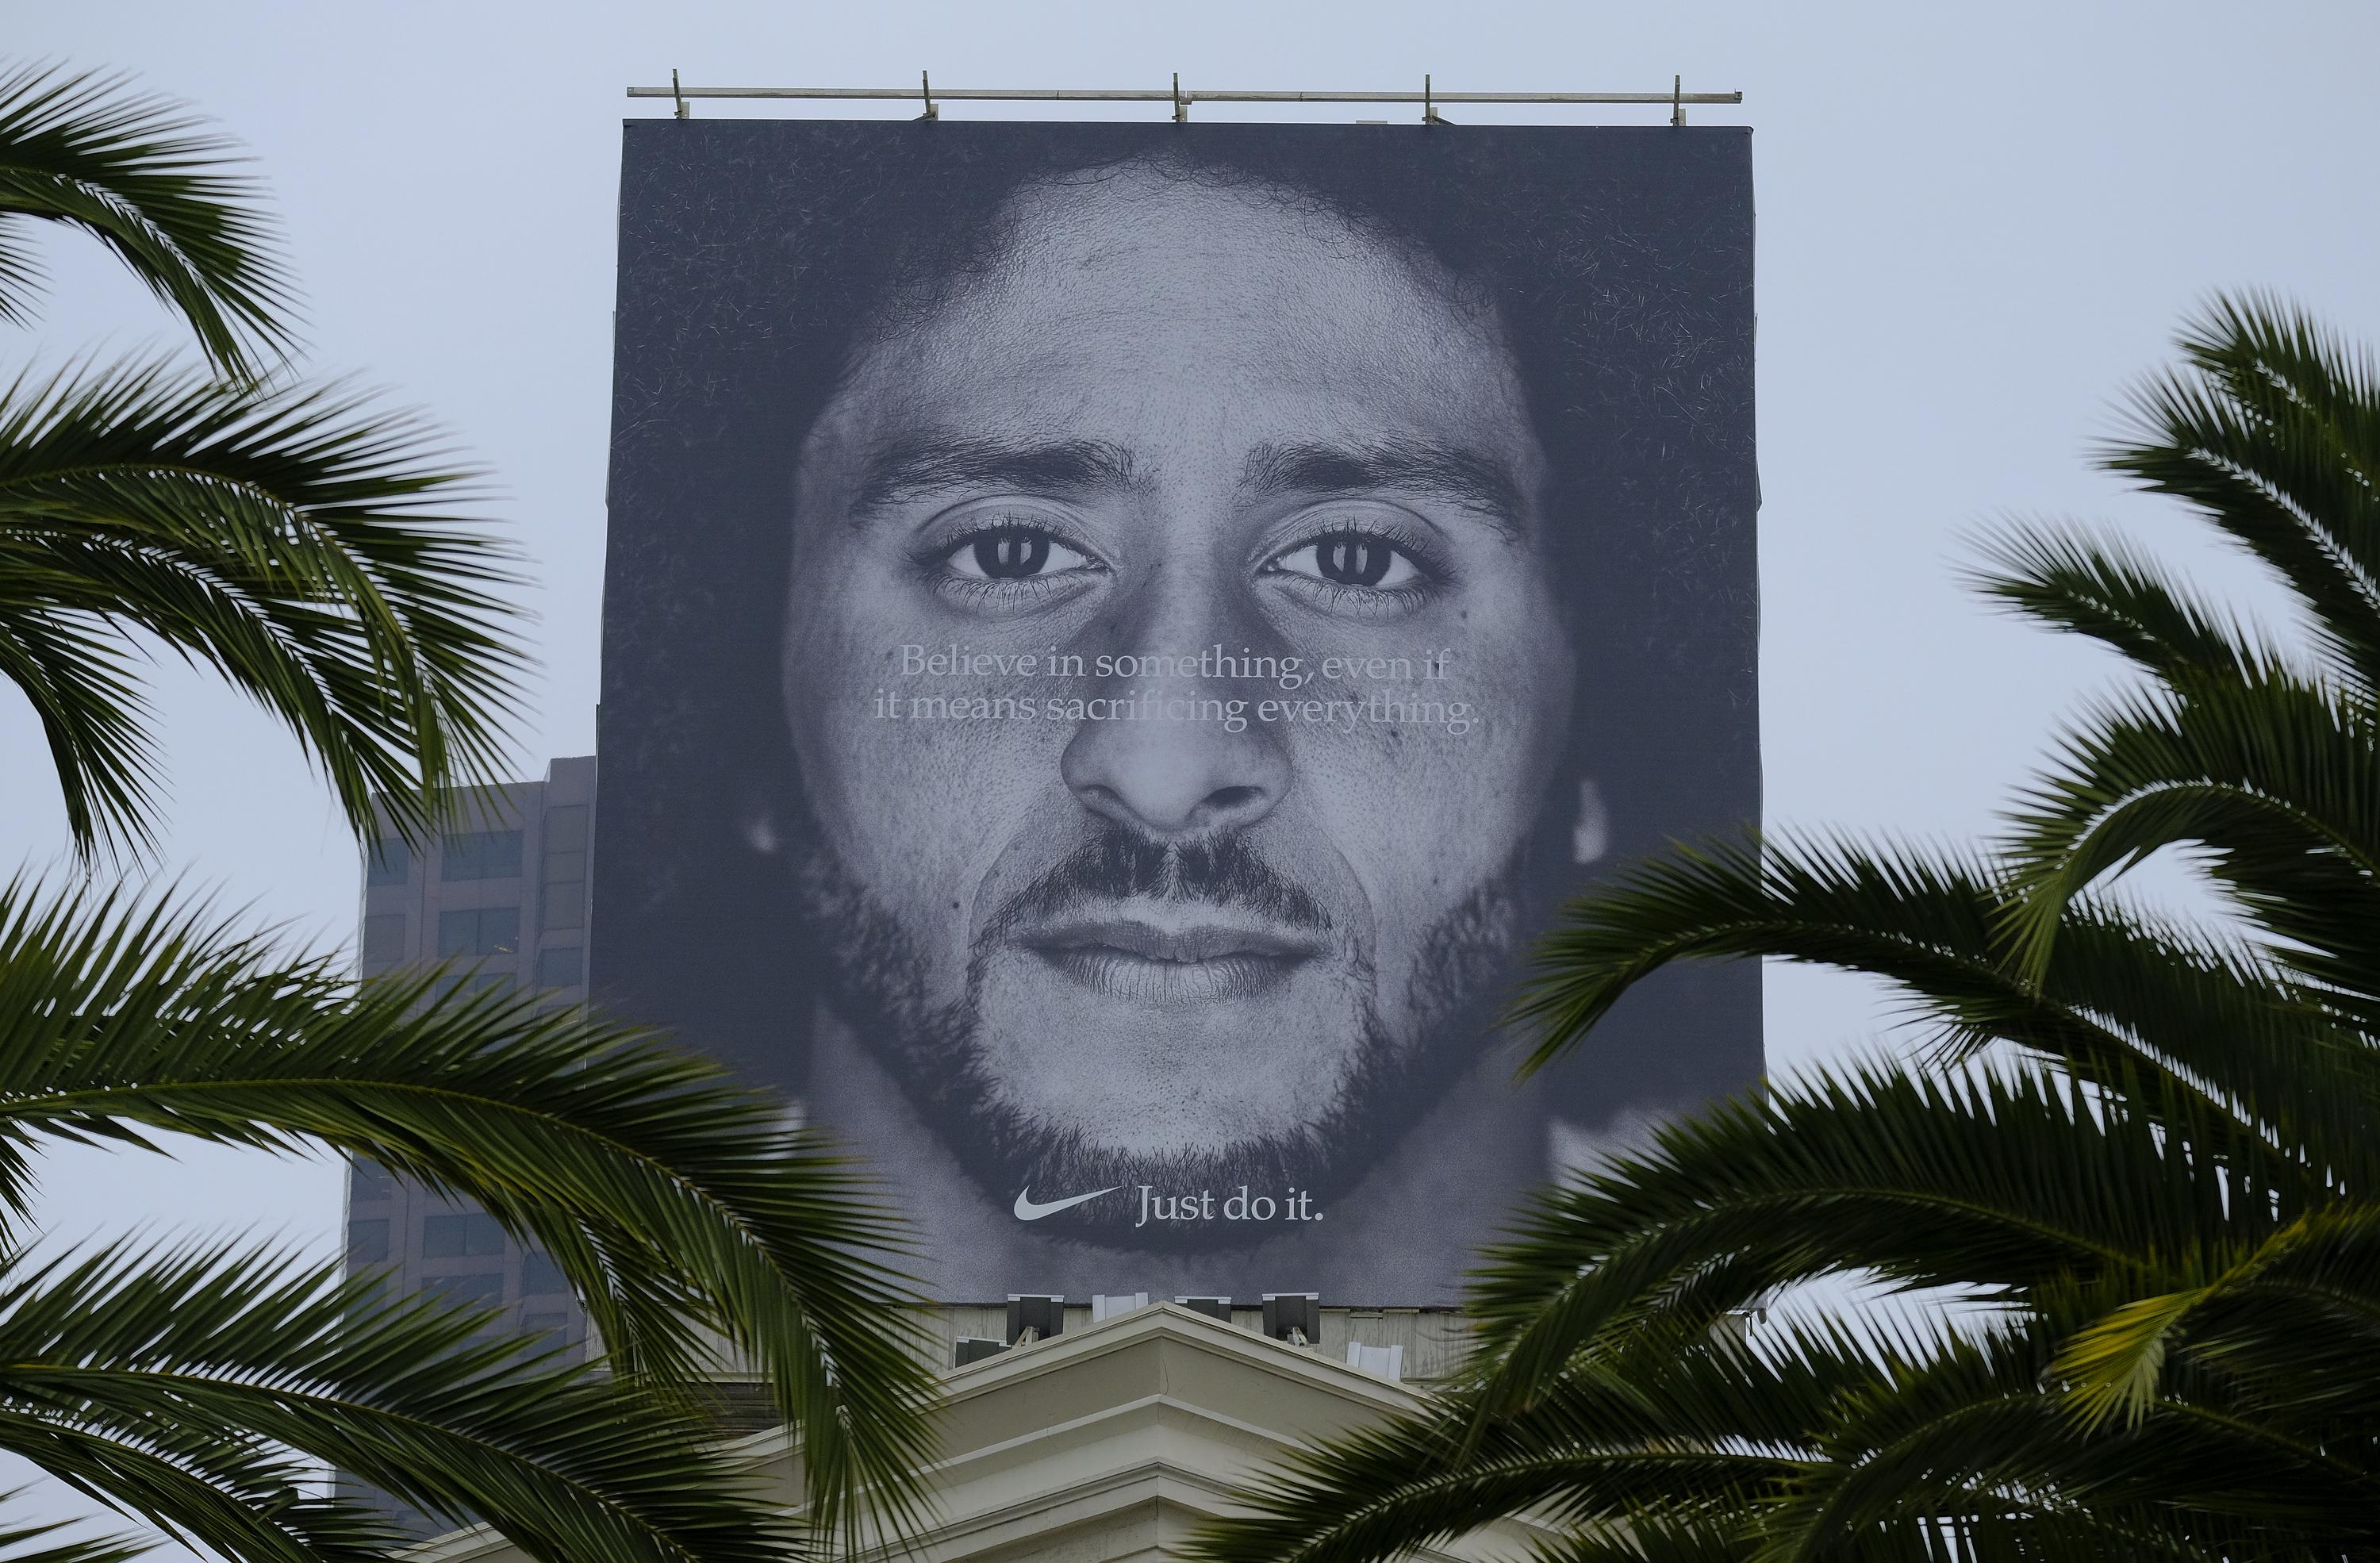 Kaepernick's face featured on billboards for a massive Nike ad campaign